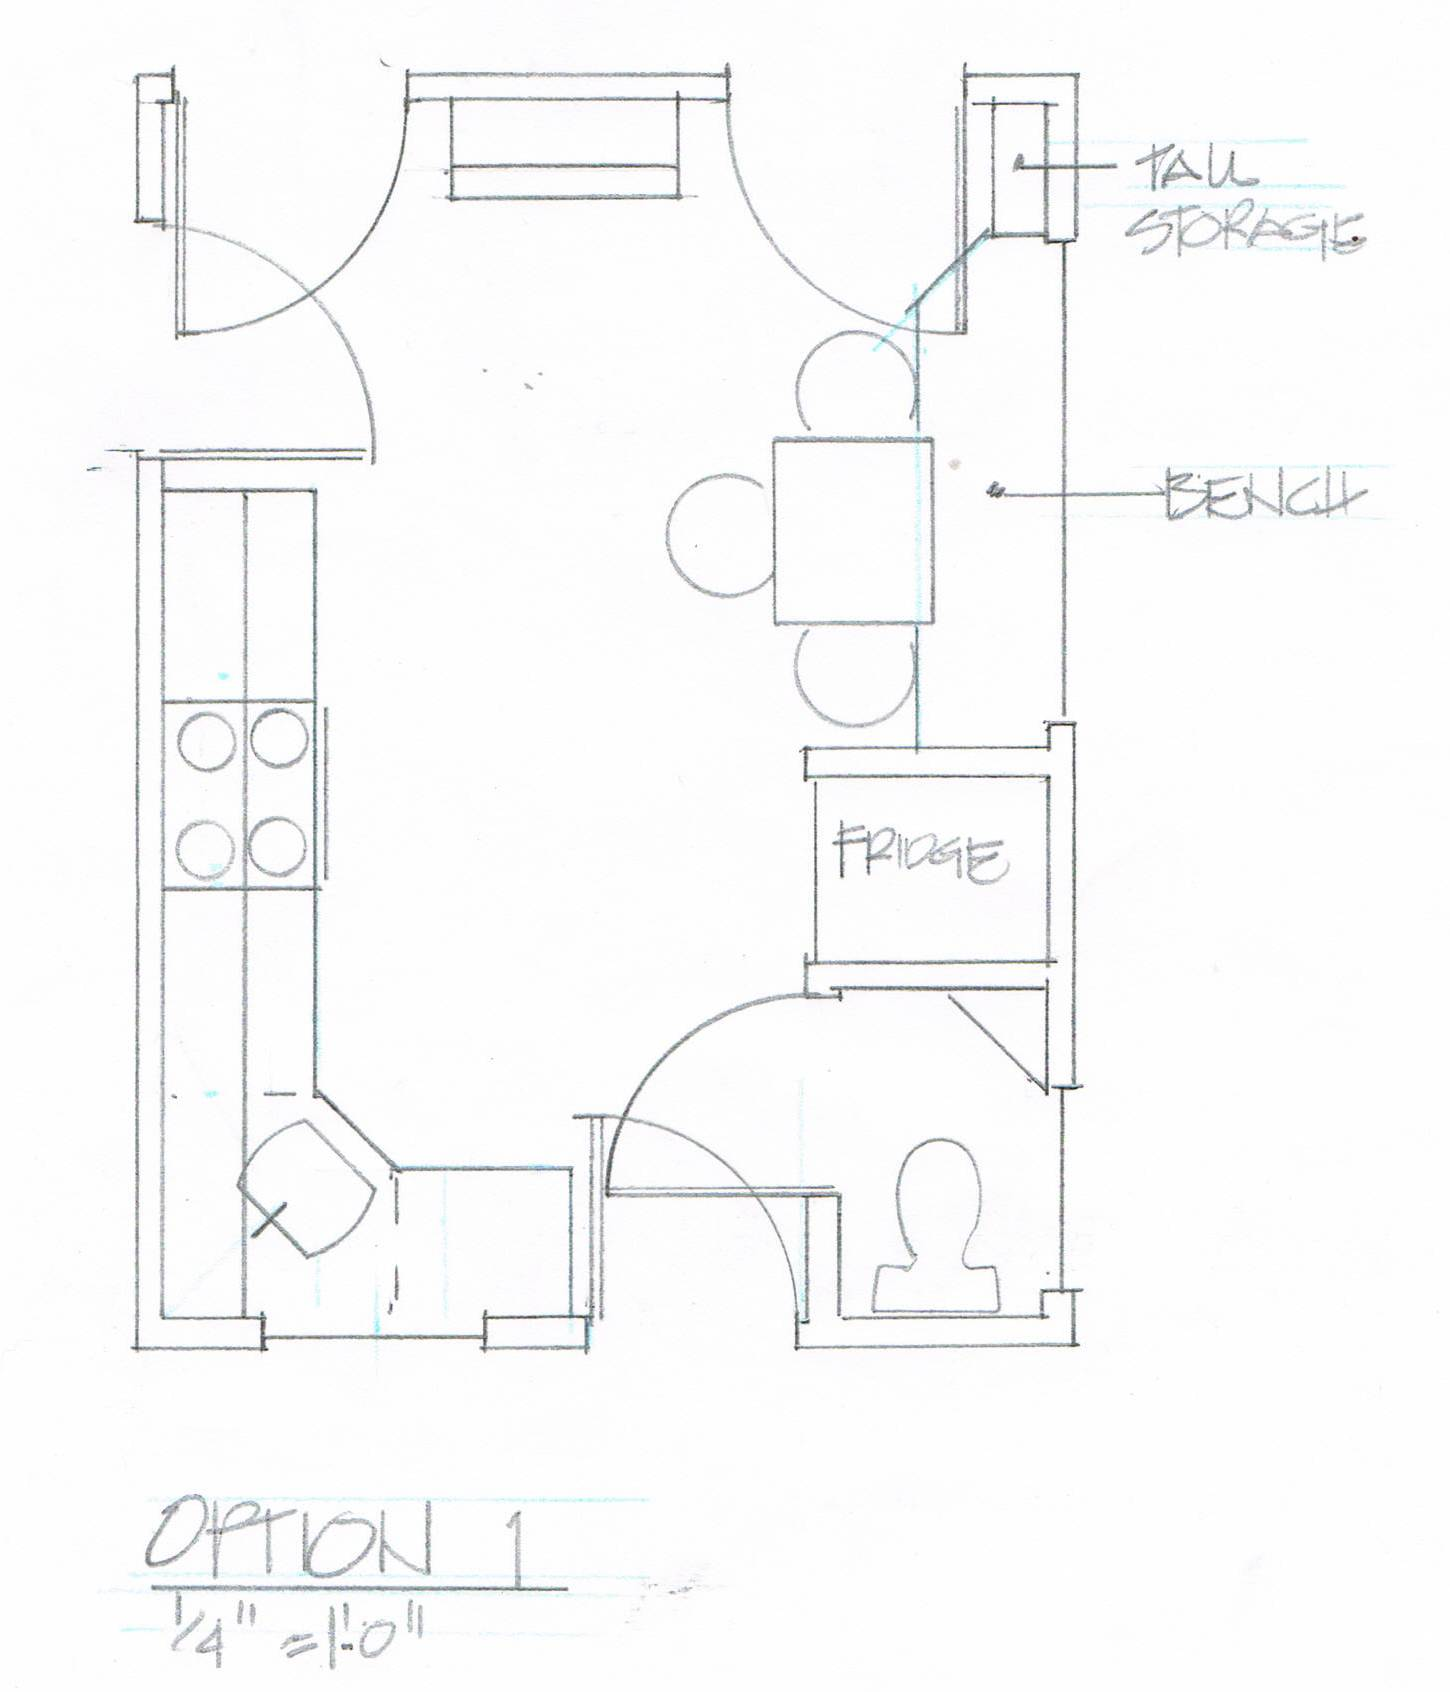 Free Building Drawing at GetDrawings.com | Free for personal use ...